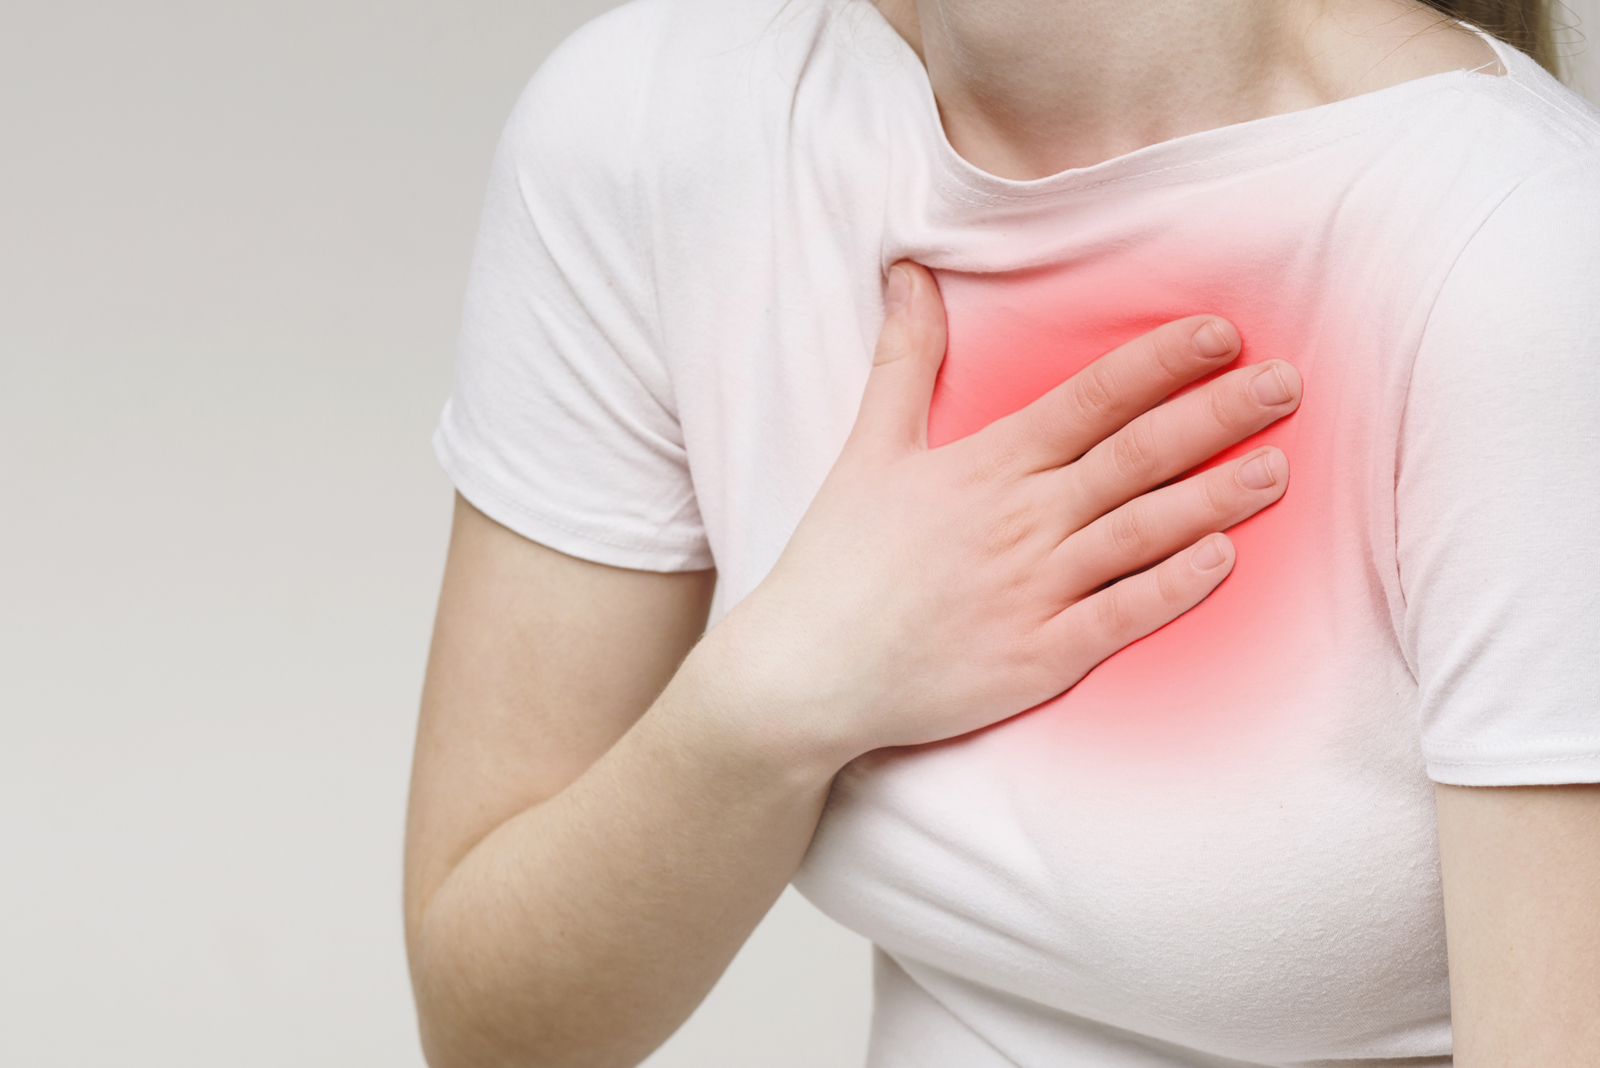 Let's talk about heartburn with Dr Alice Fitzgibbon